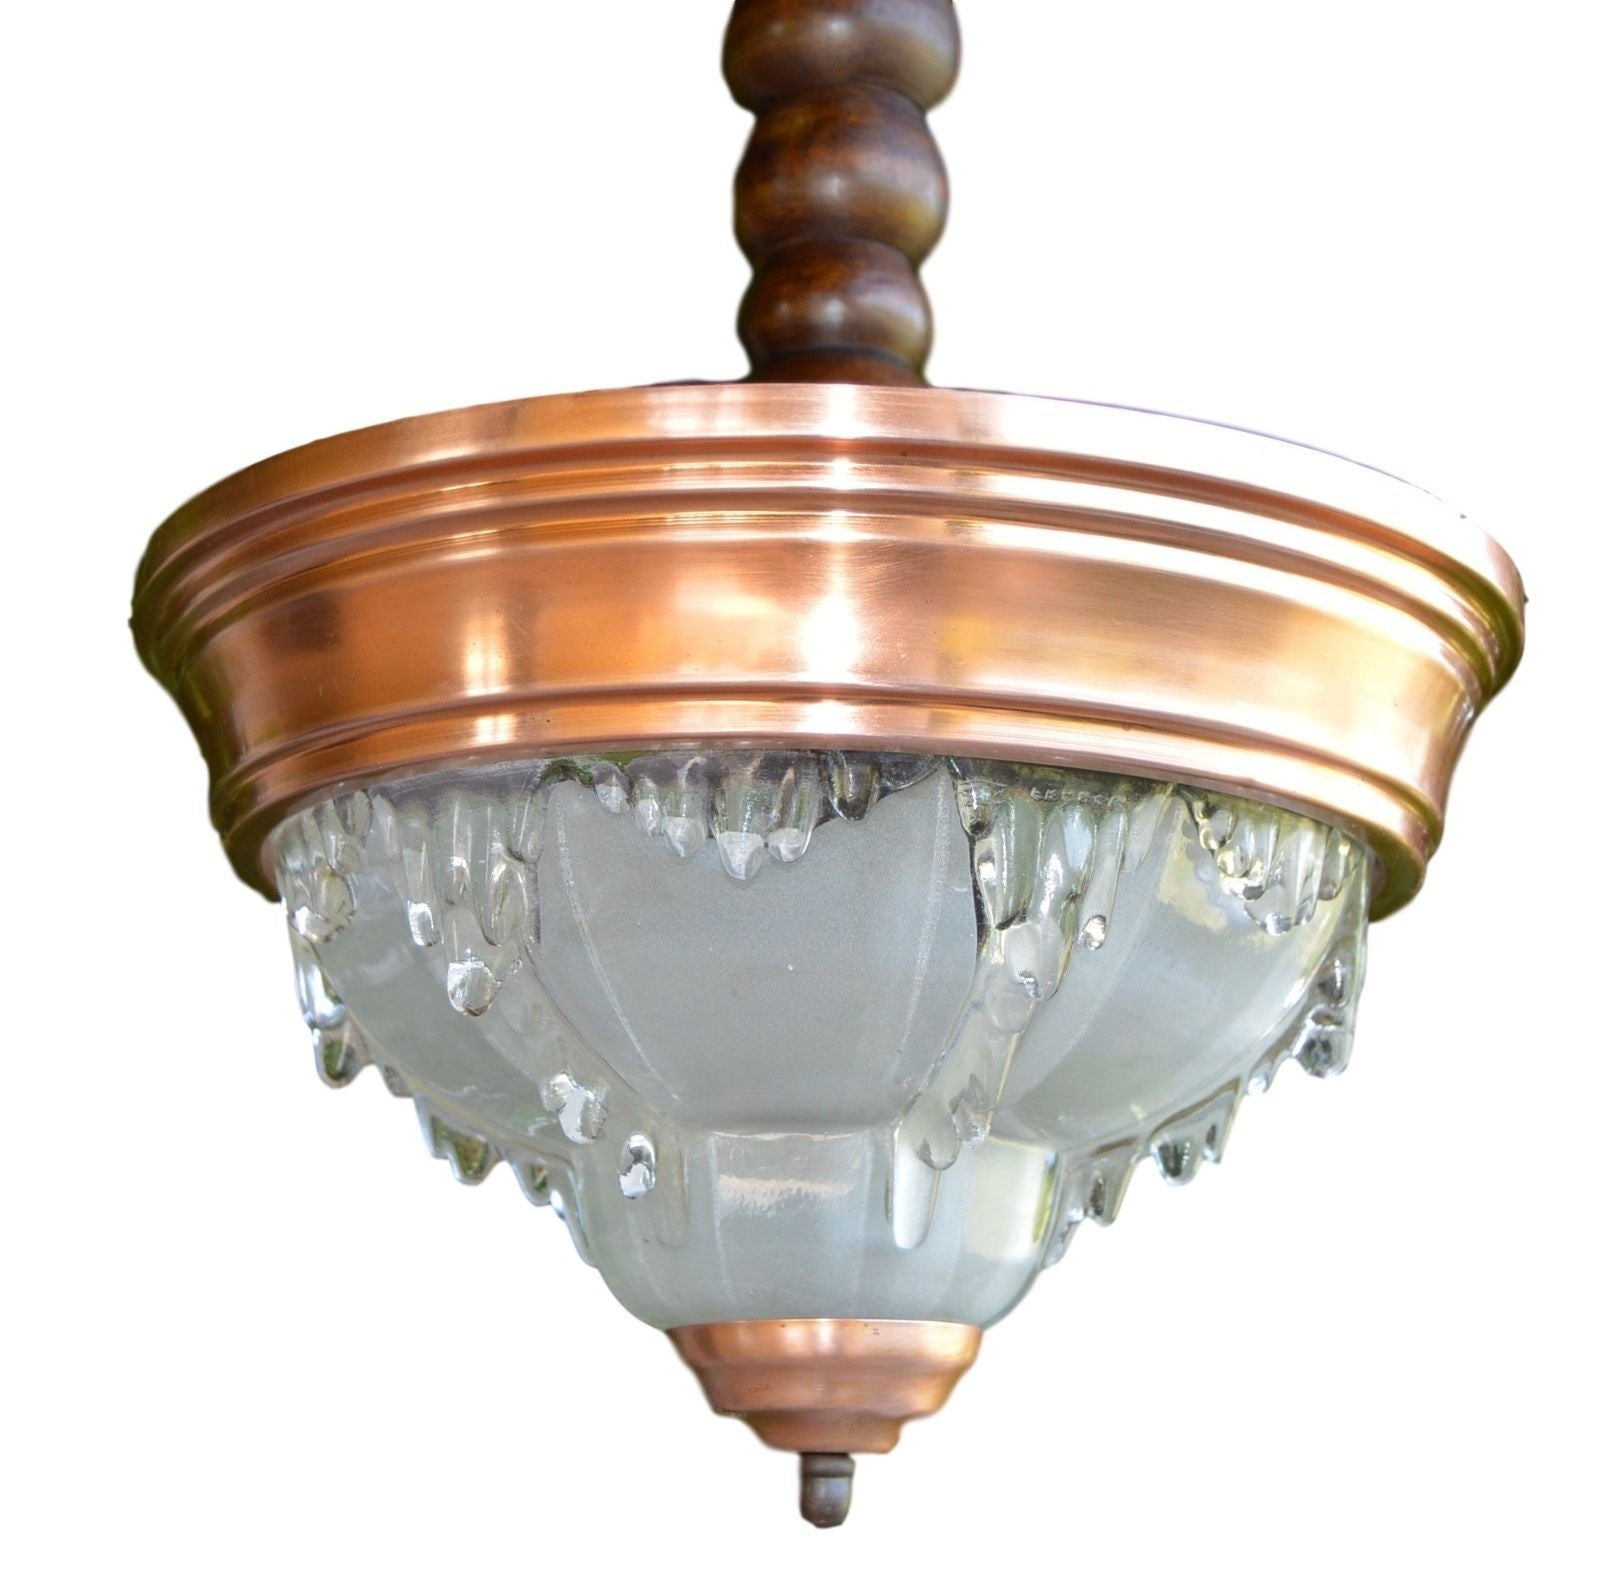 EZAN French Opalescent Glass Art Deco Chandelier Ceiling Lamp Light - Charmantiques